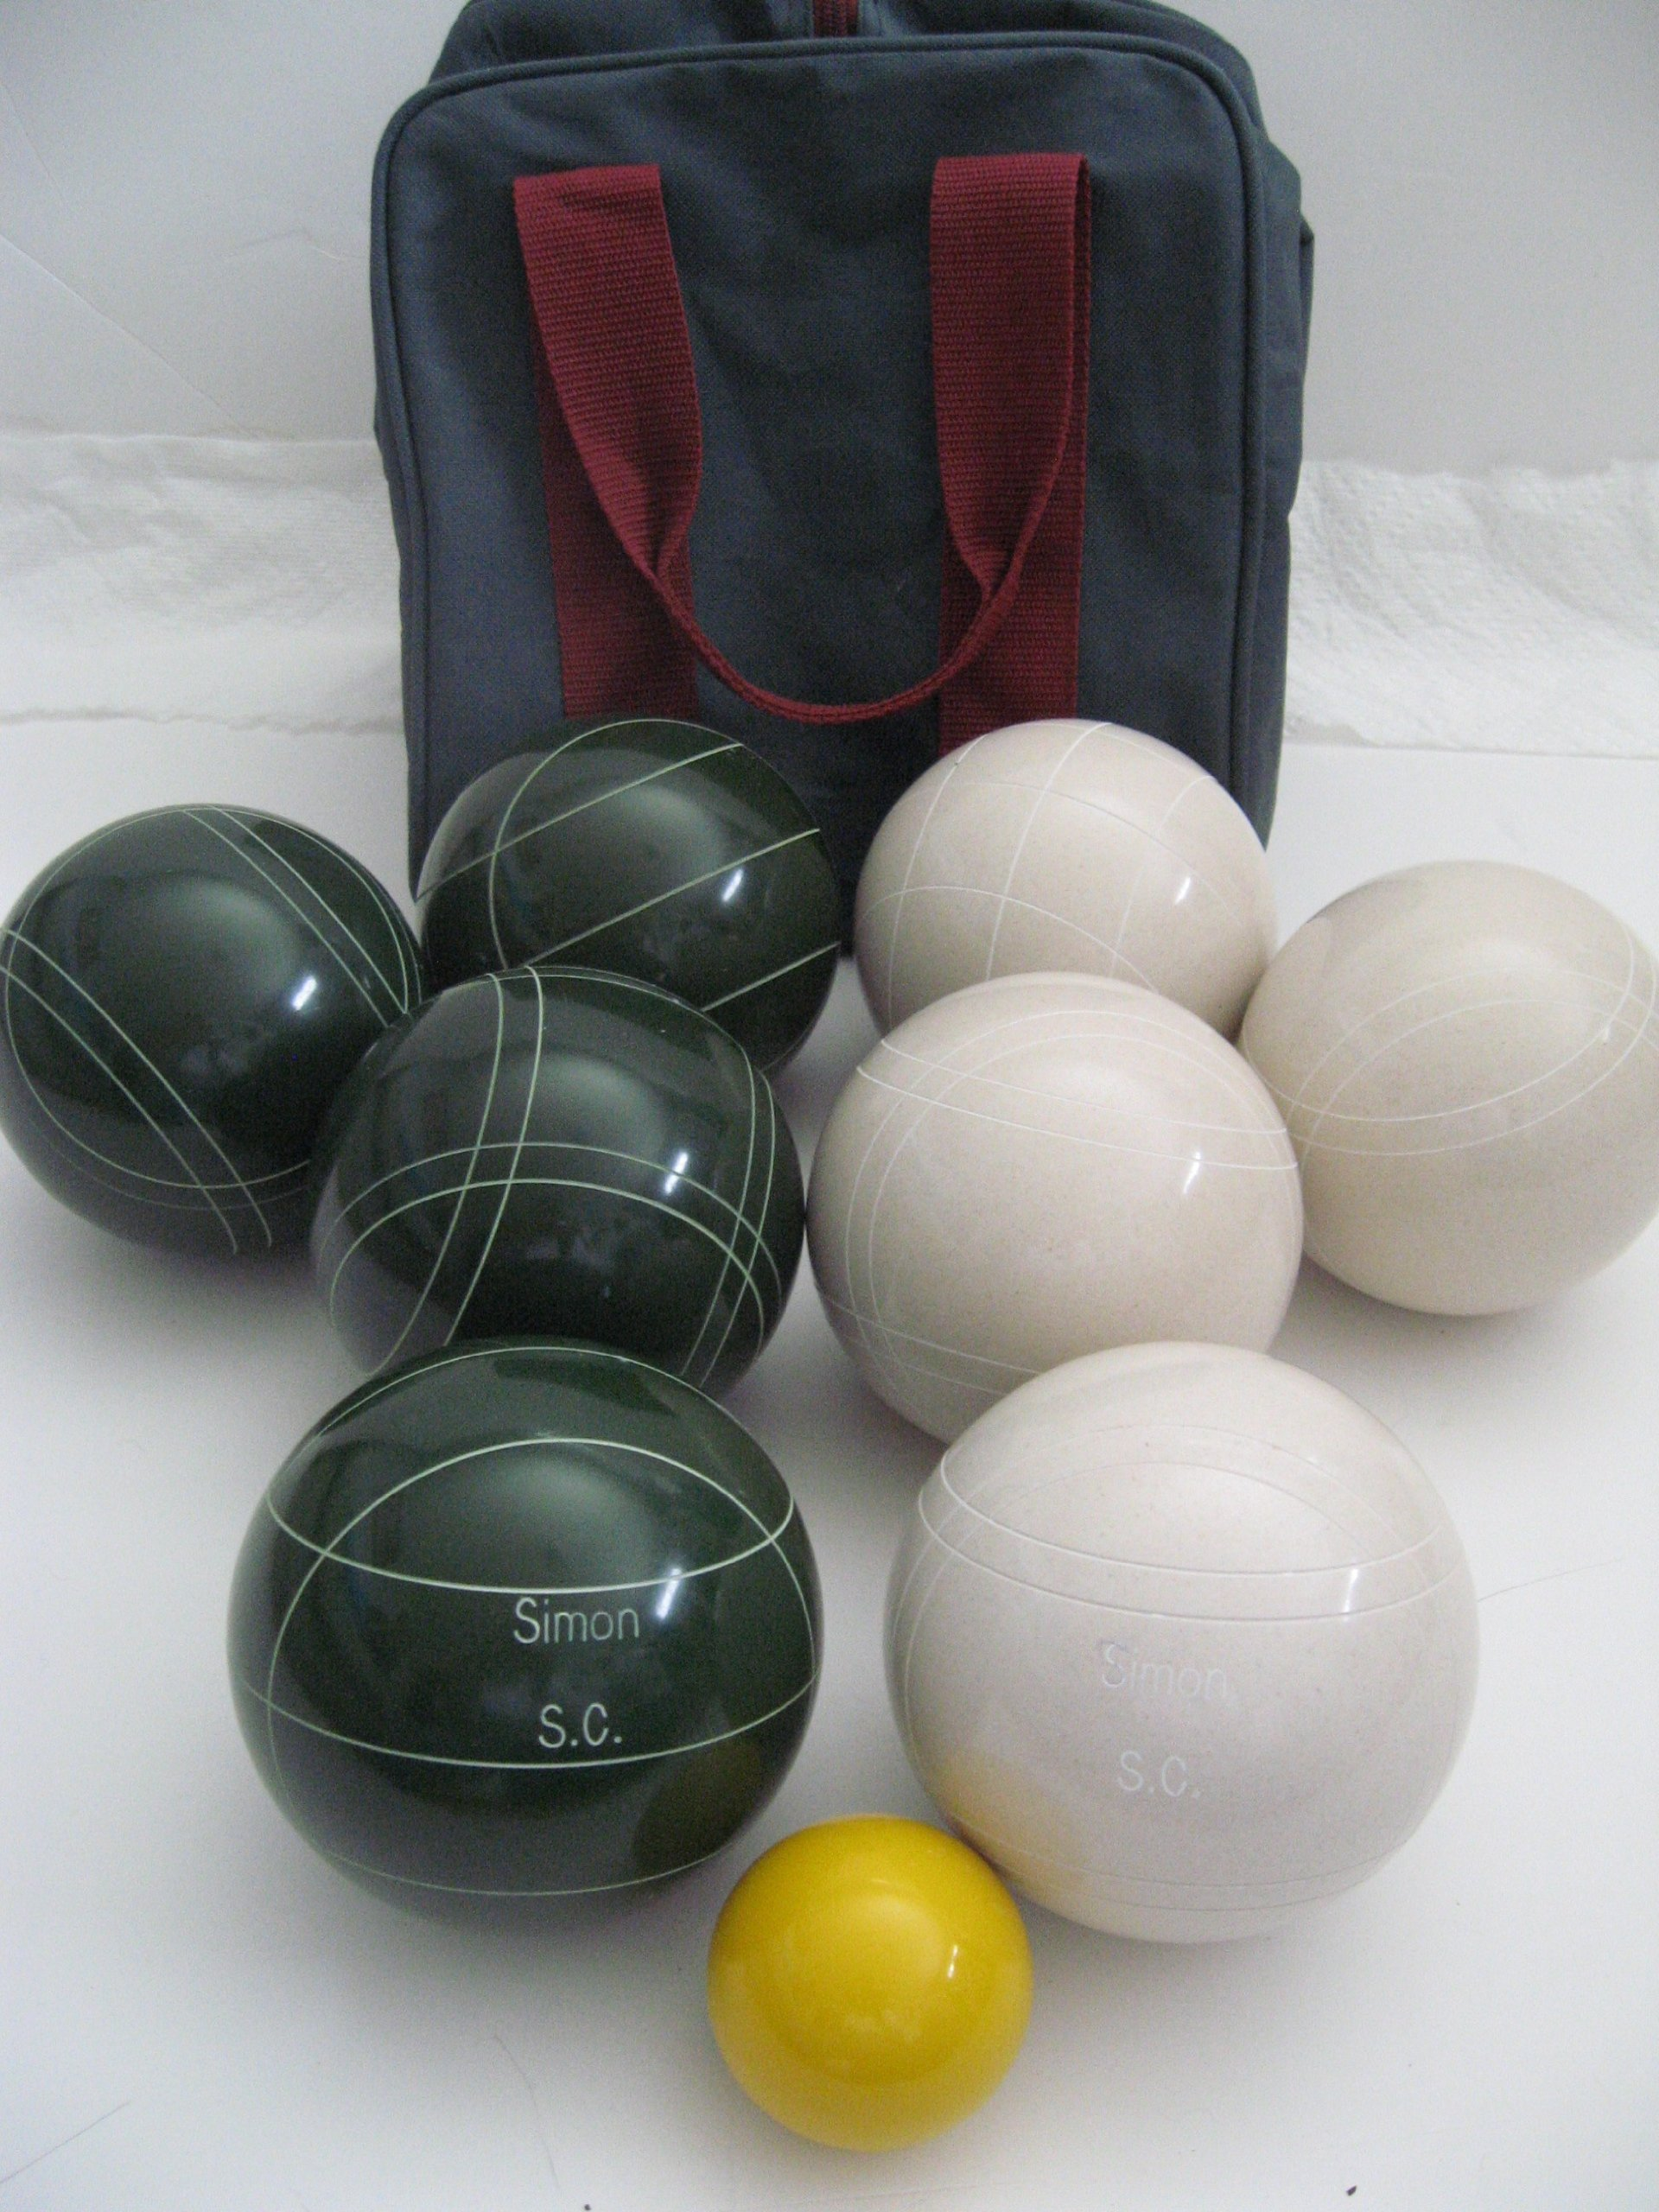 Premium Quality Engraved Bocce Package - 110mm Epco White and Green Balls with Engraving [Misc.]